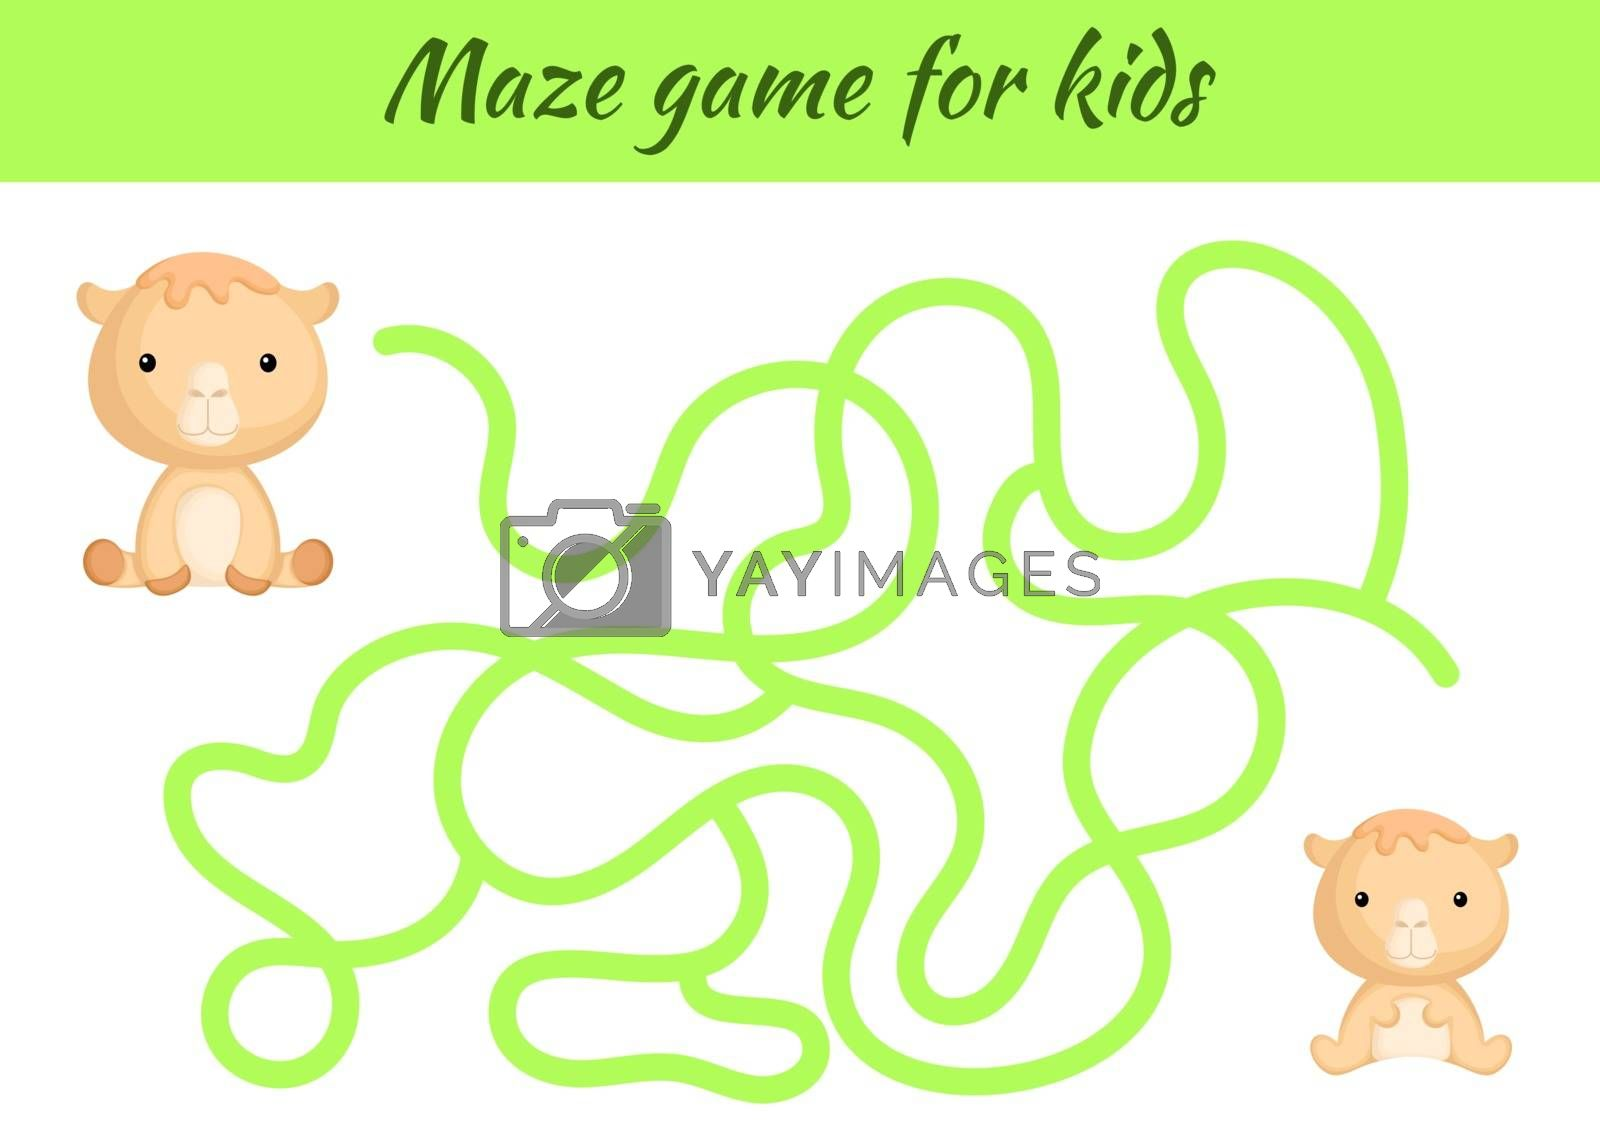 Funny maze or labyrinth game for kids. Help mother find path to baby. Education developing worksheet. Activity page. Cartoon camel characters. Riddle for preschool. Color vector stock illustration.